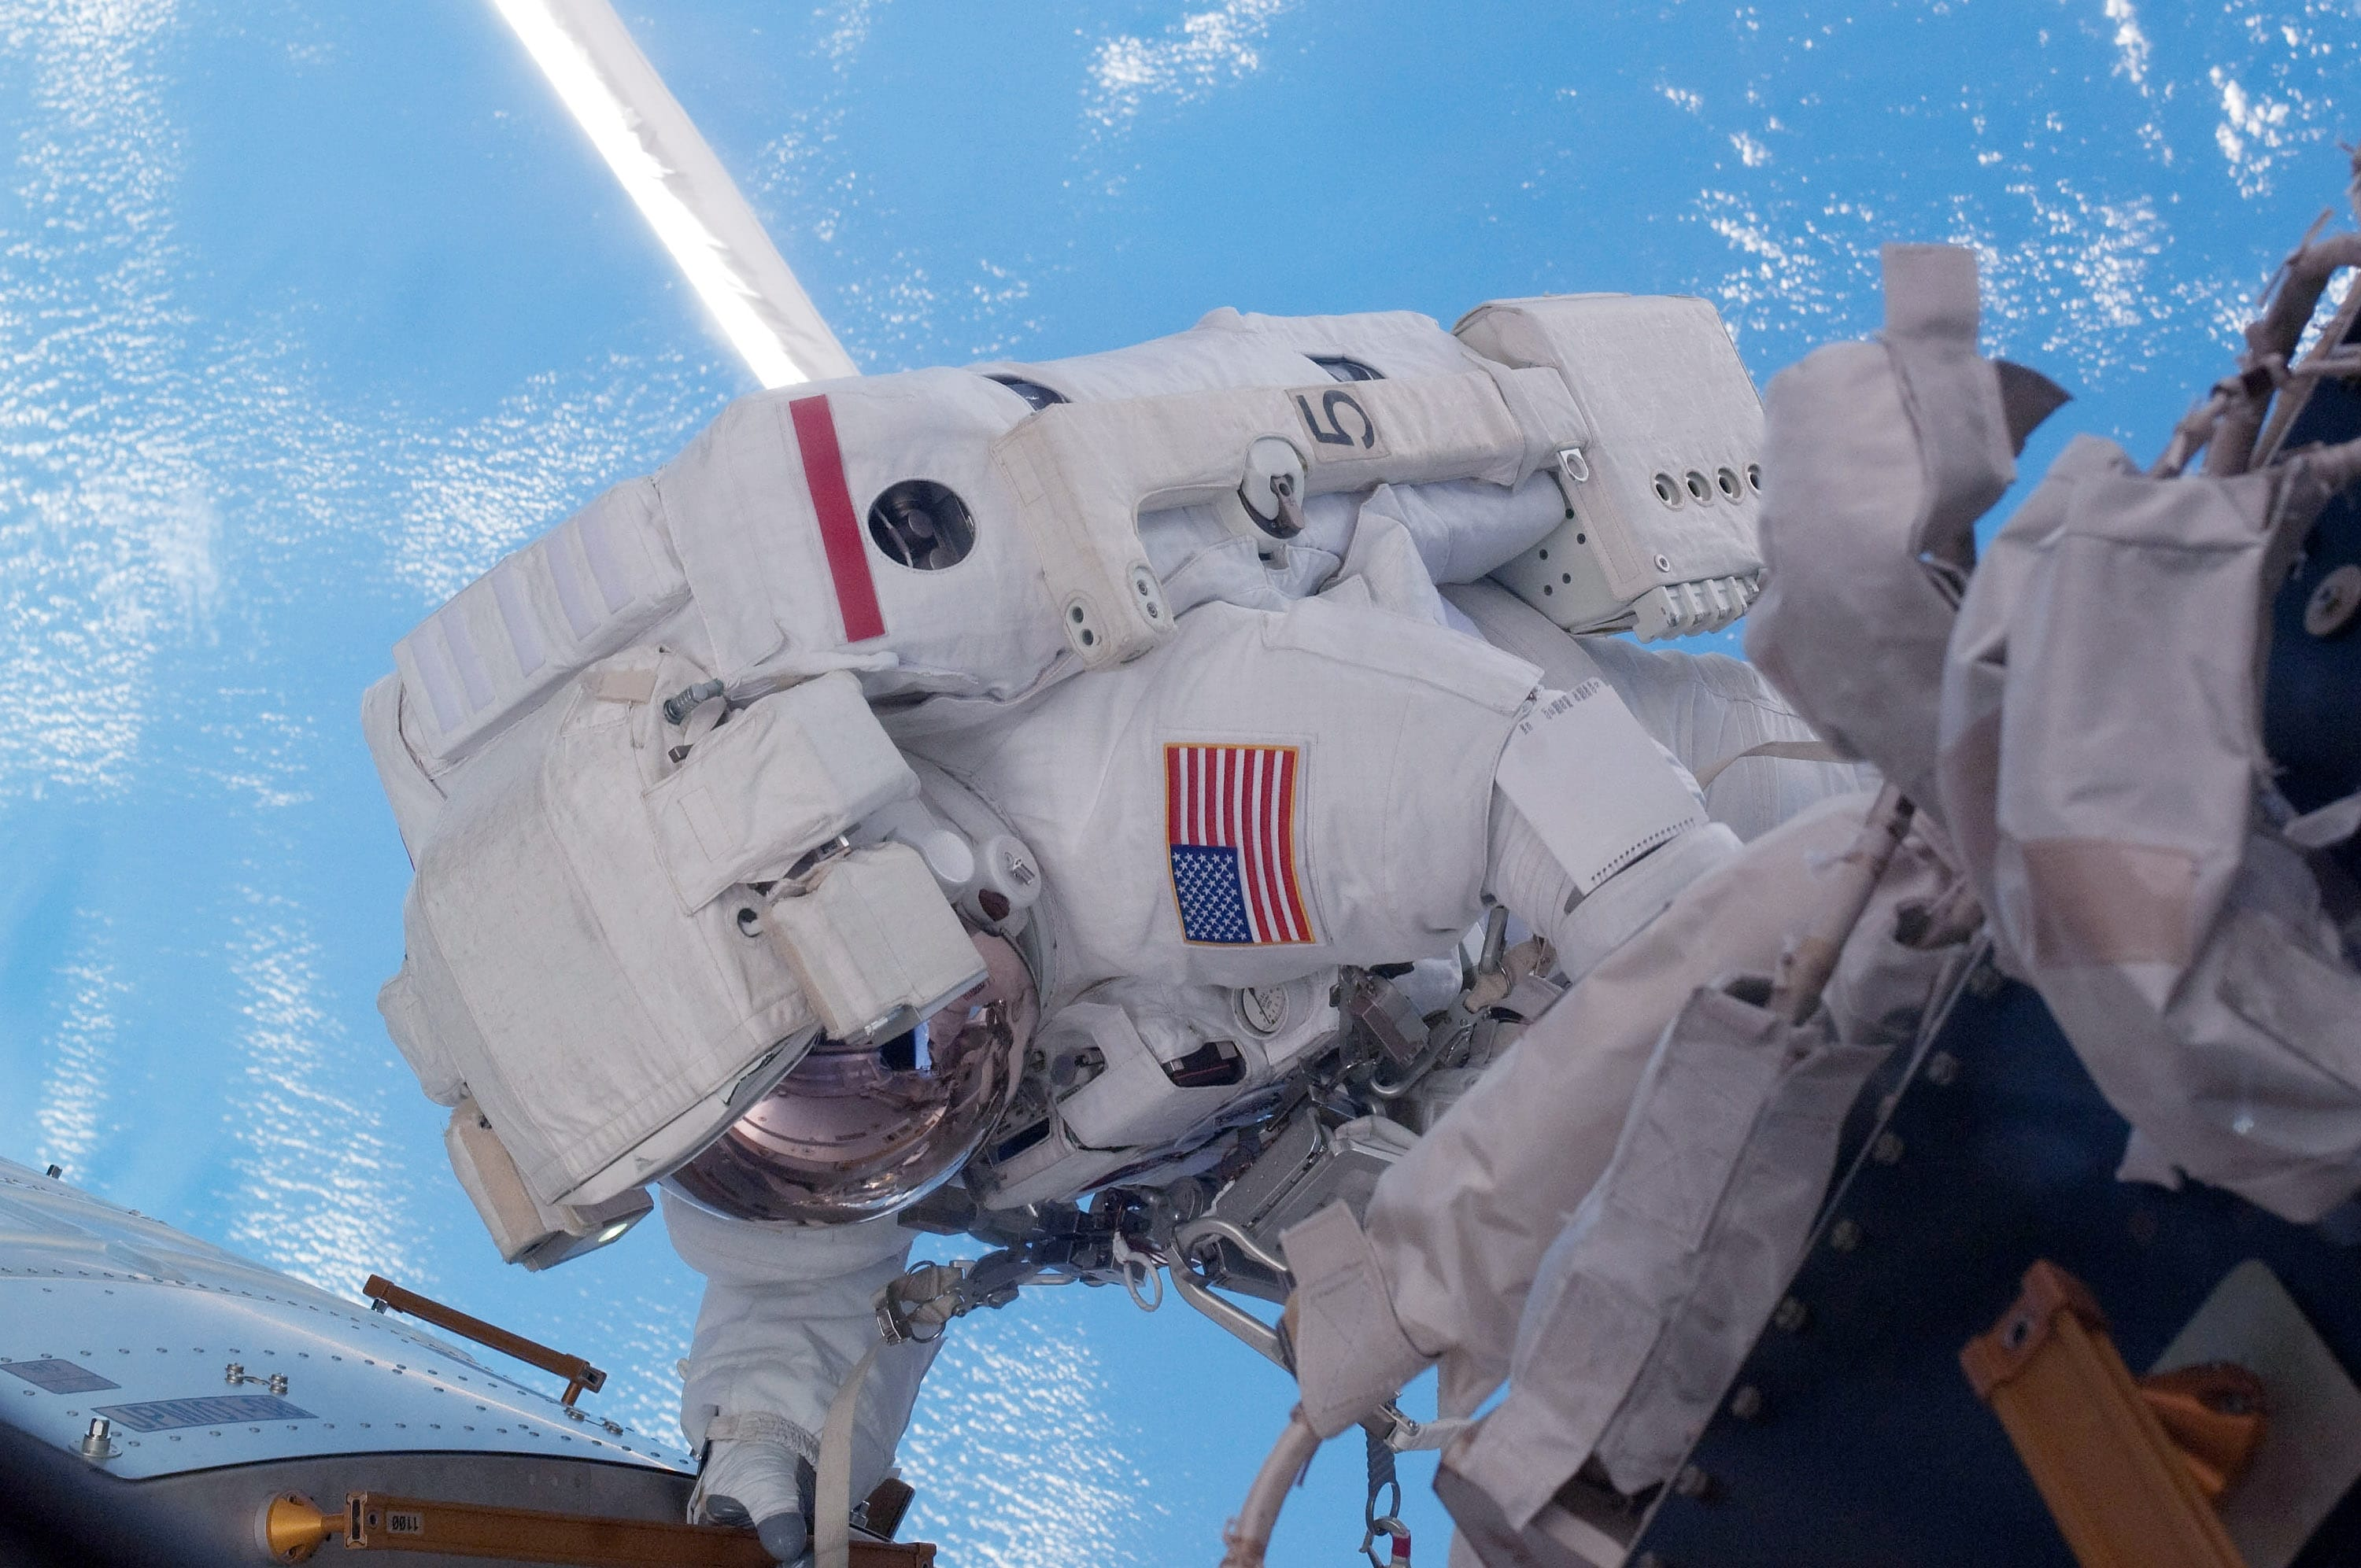 NASA Astronaut Launched By SpaceX Goes Out For a Spacewalk: Video